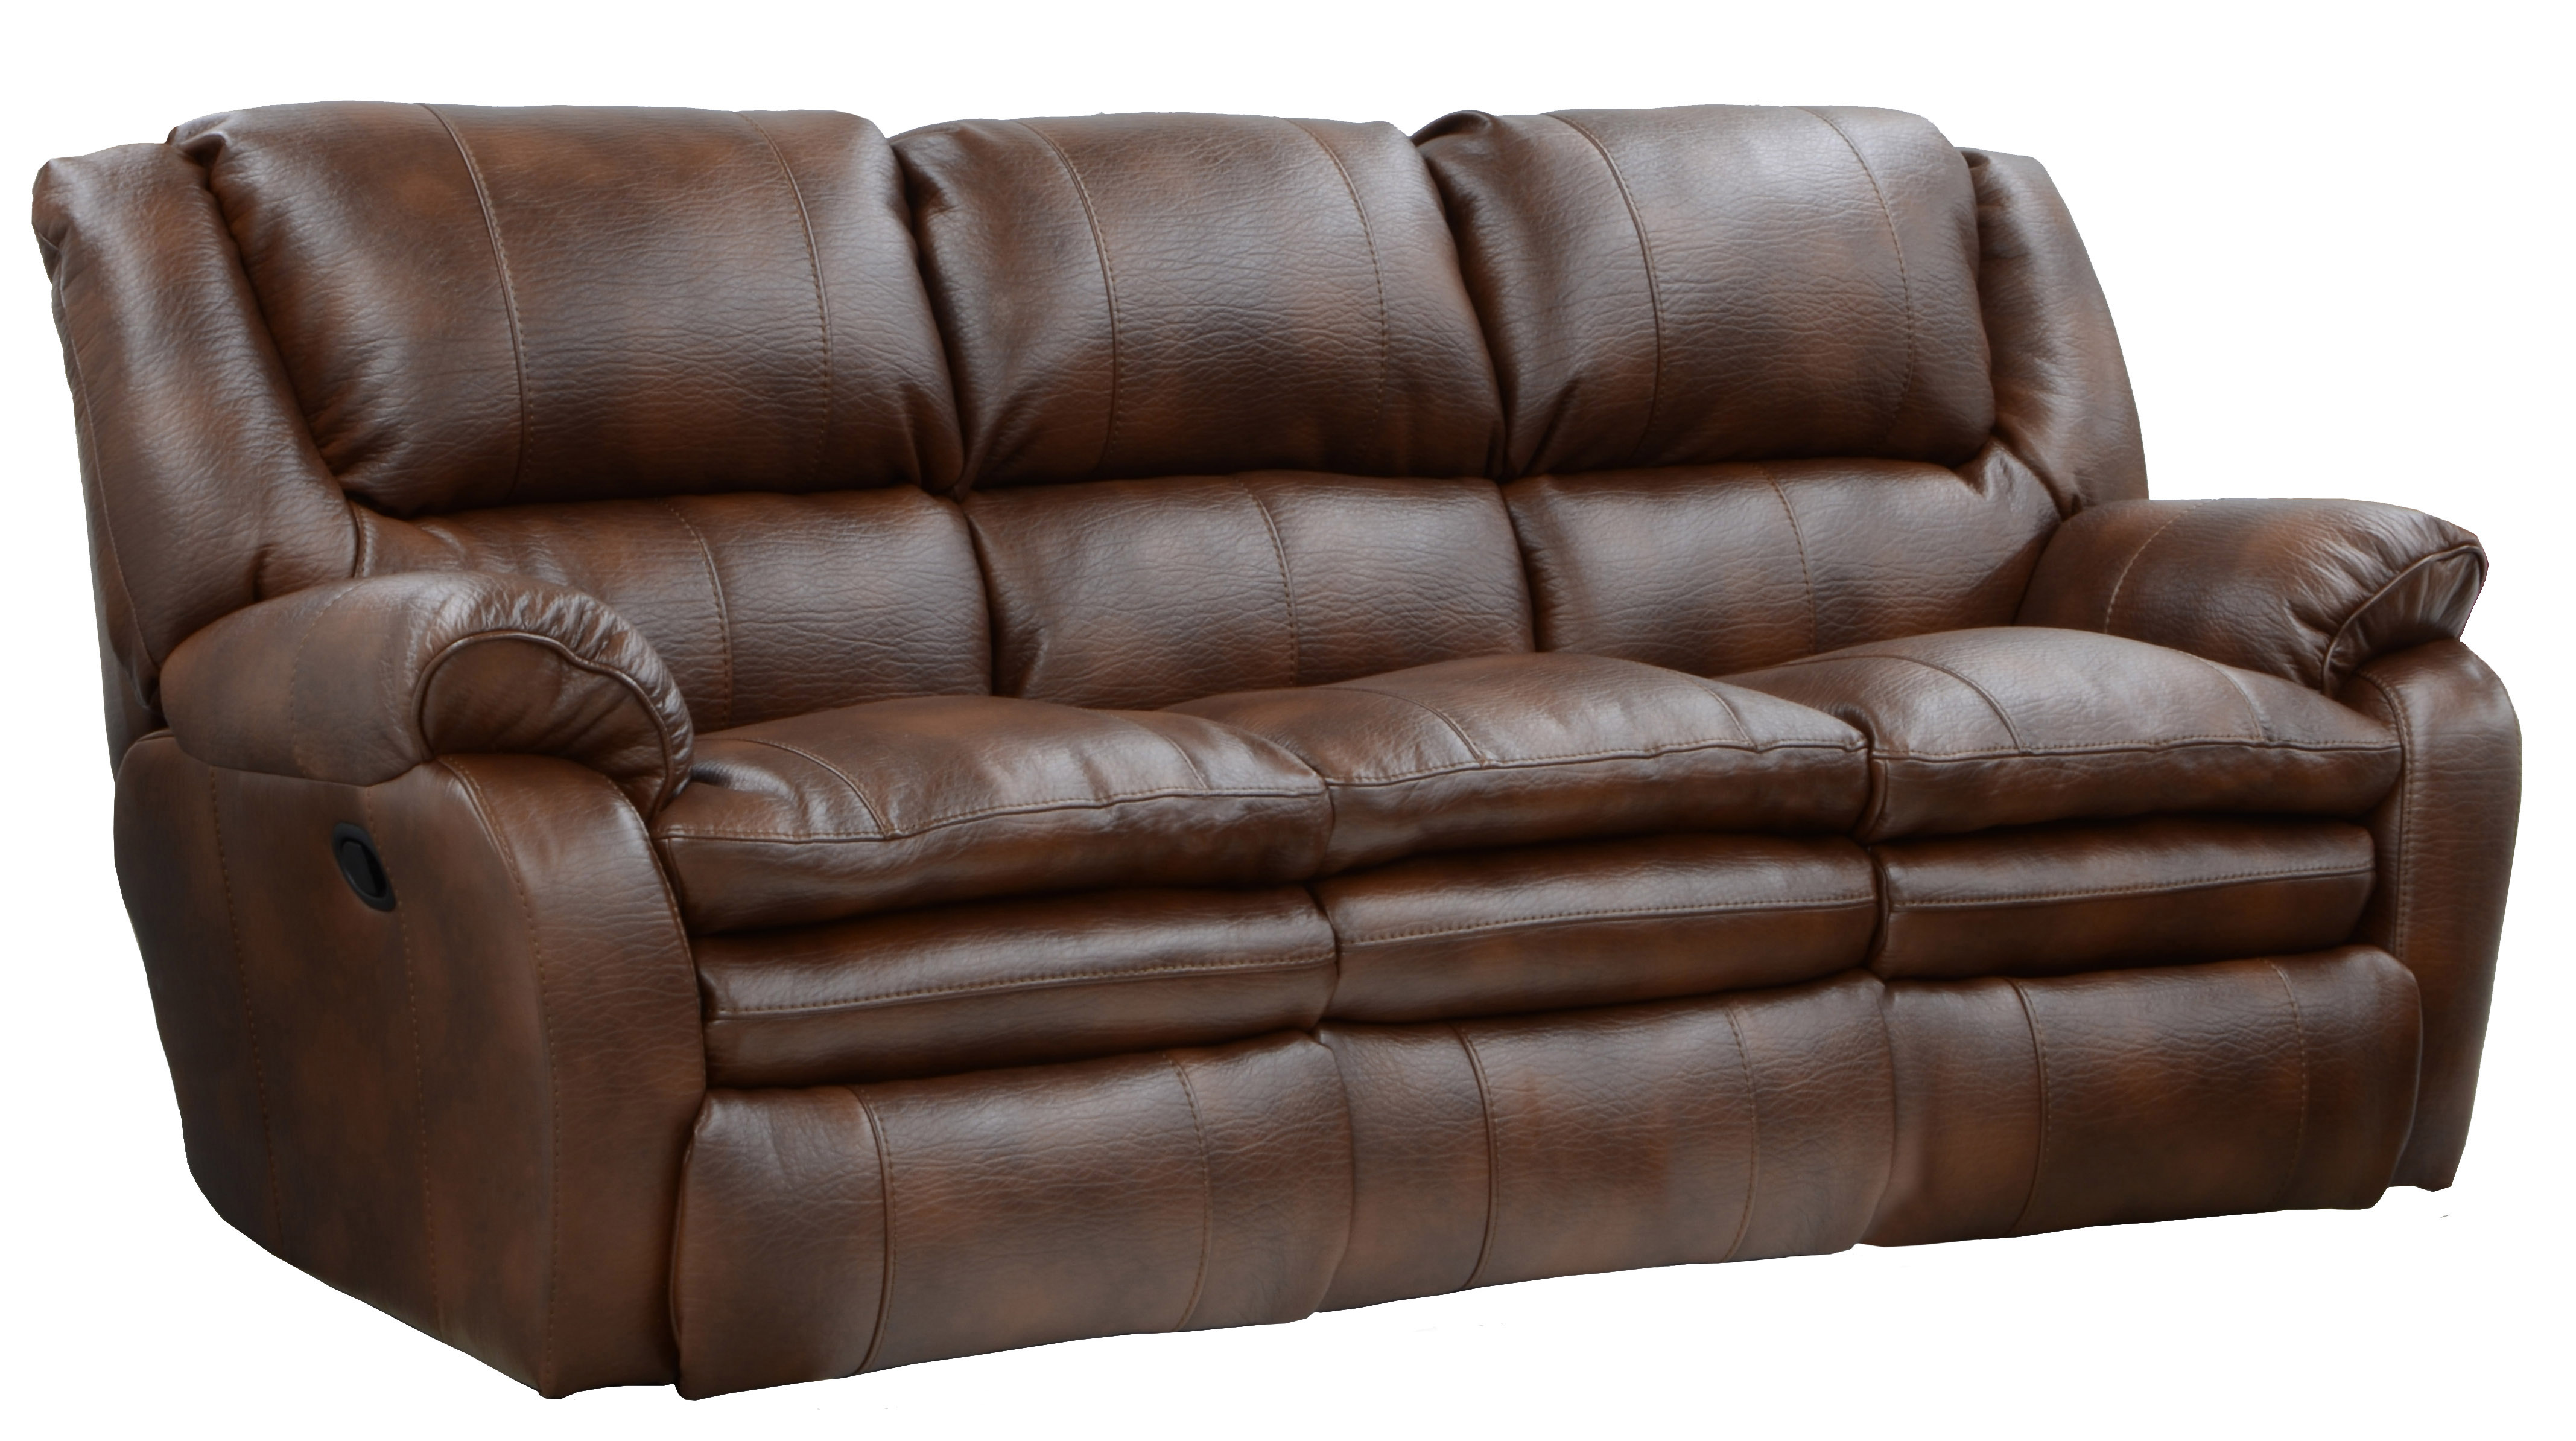 Catnapper Russell Leather Sofa By Oj Commerce 1 1